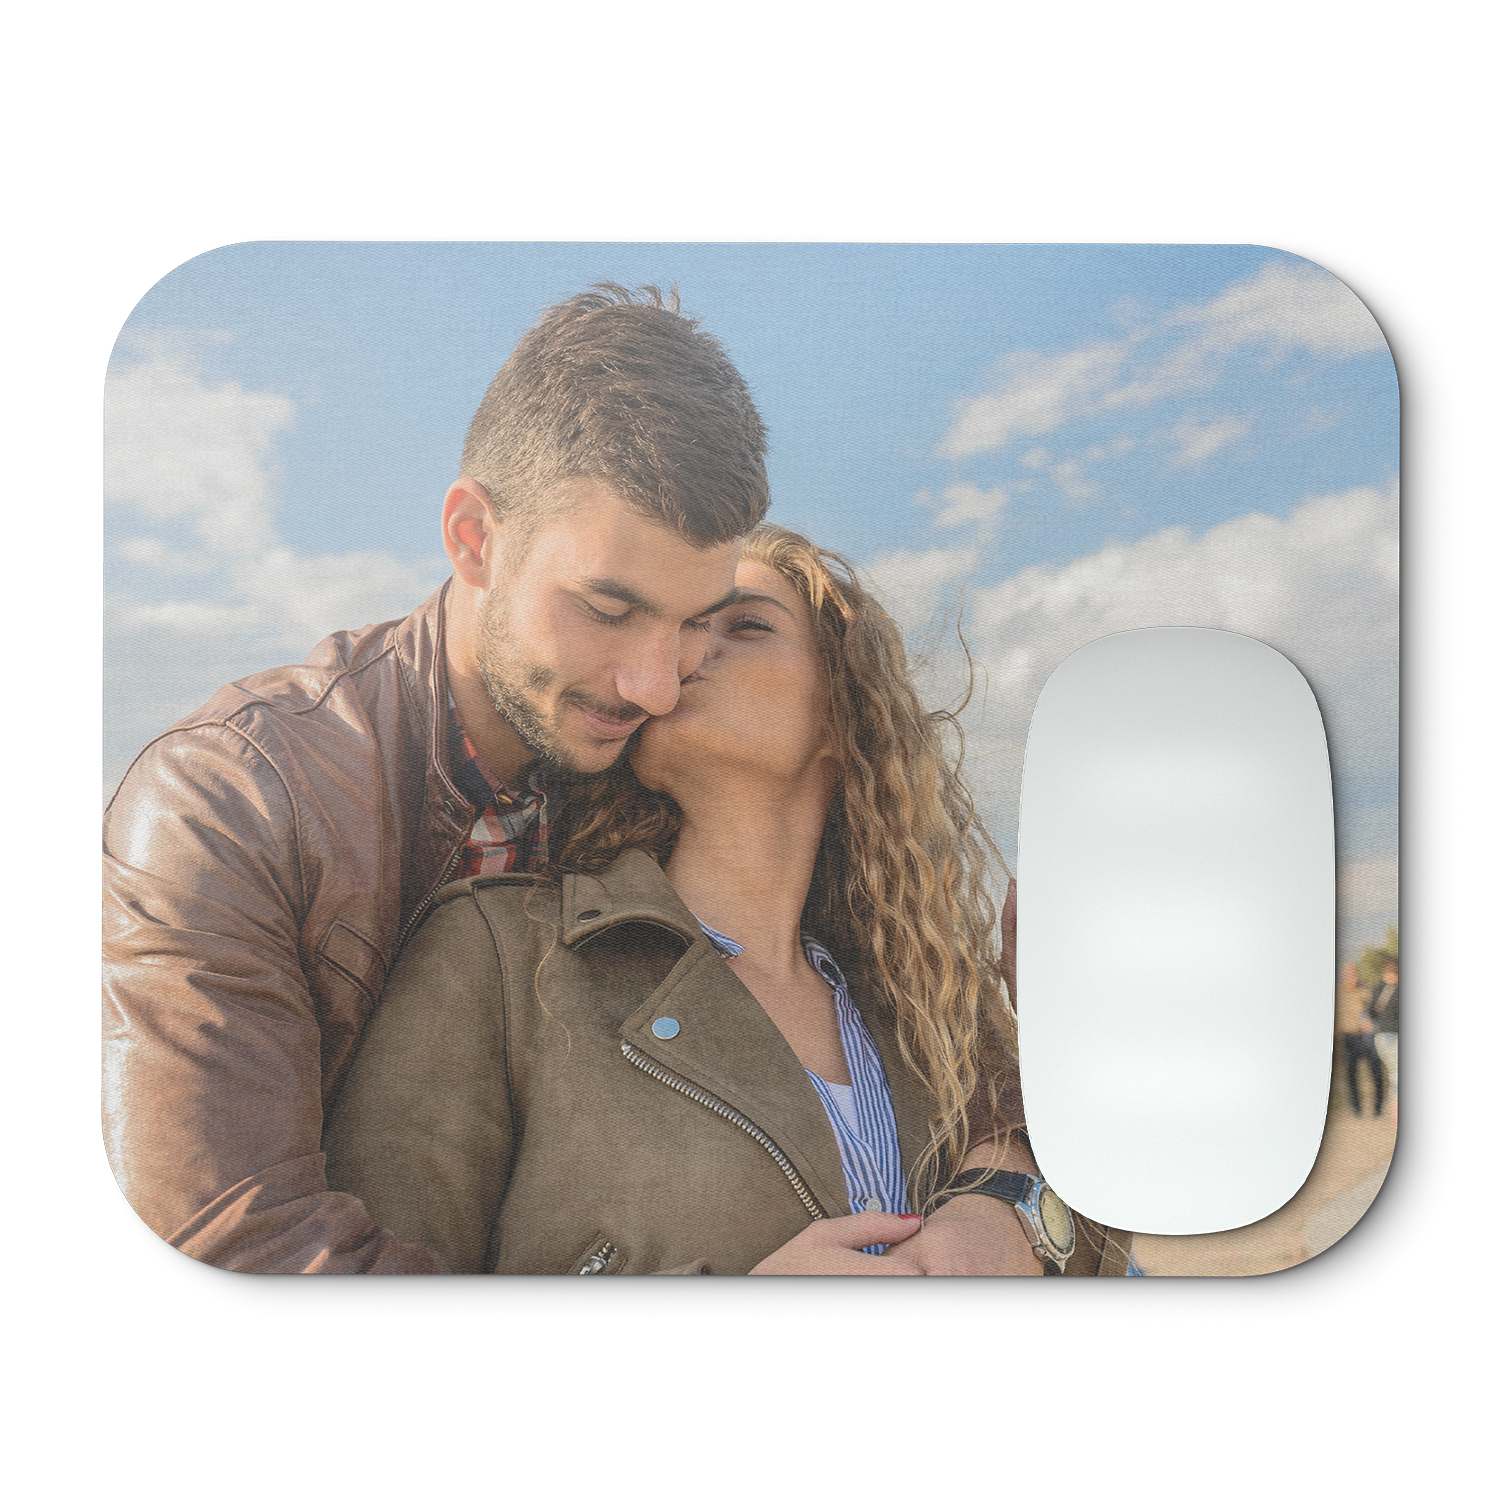 High-Quality Photo Mouse Pad